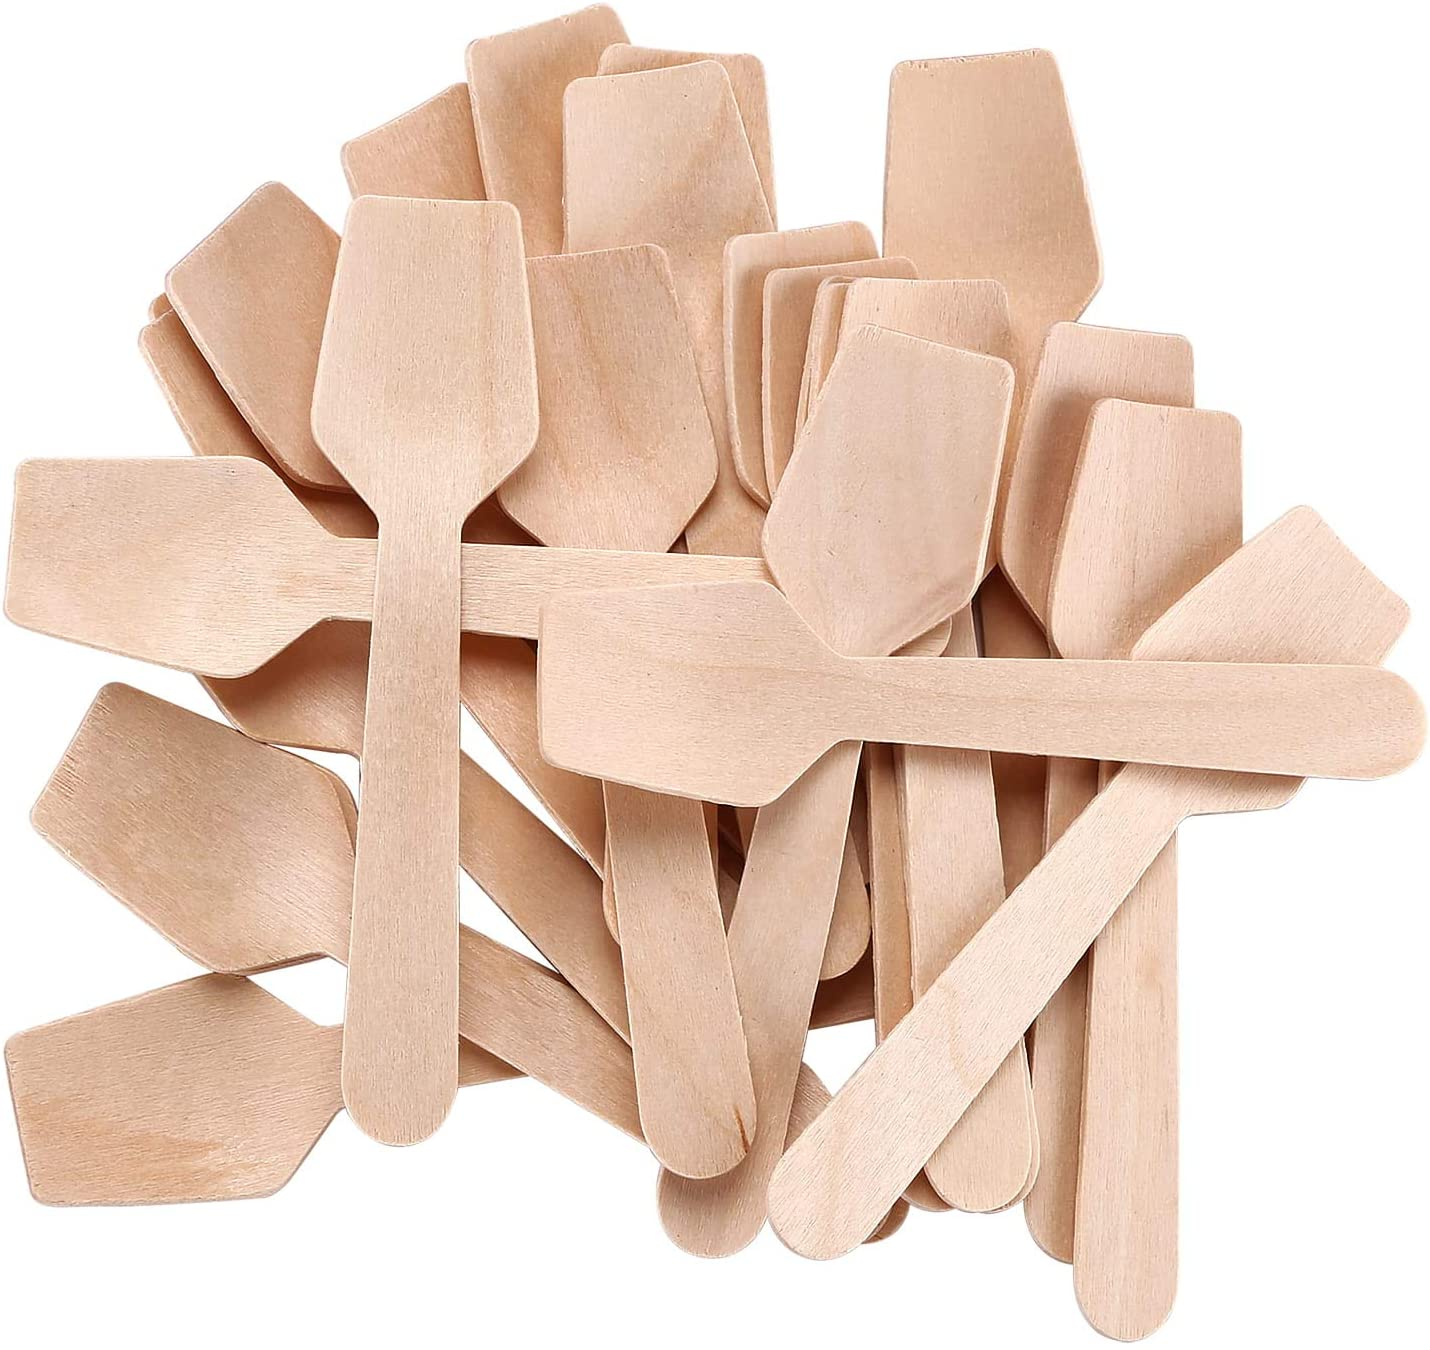 """Gmark 3-3/4"""" Mini Wooden Spoons Pack of 100, Disposable Square End Tasting Spoon, Sampling Yogurt Spoon Ice Cream Spoon, Biodegradable Compostable Birchwood GM1101A"""